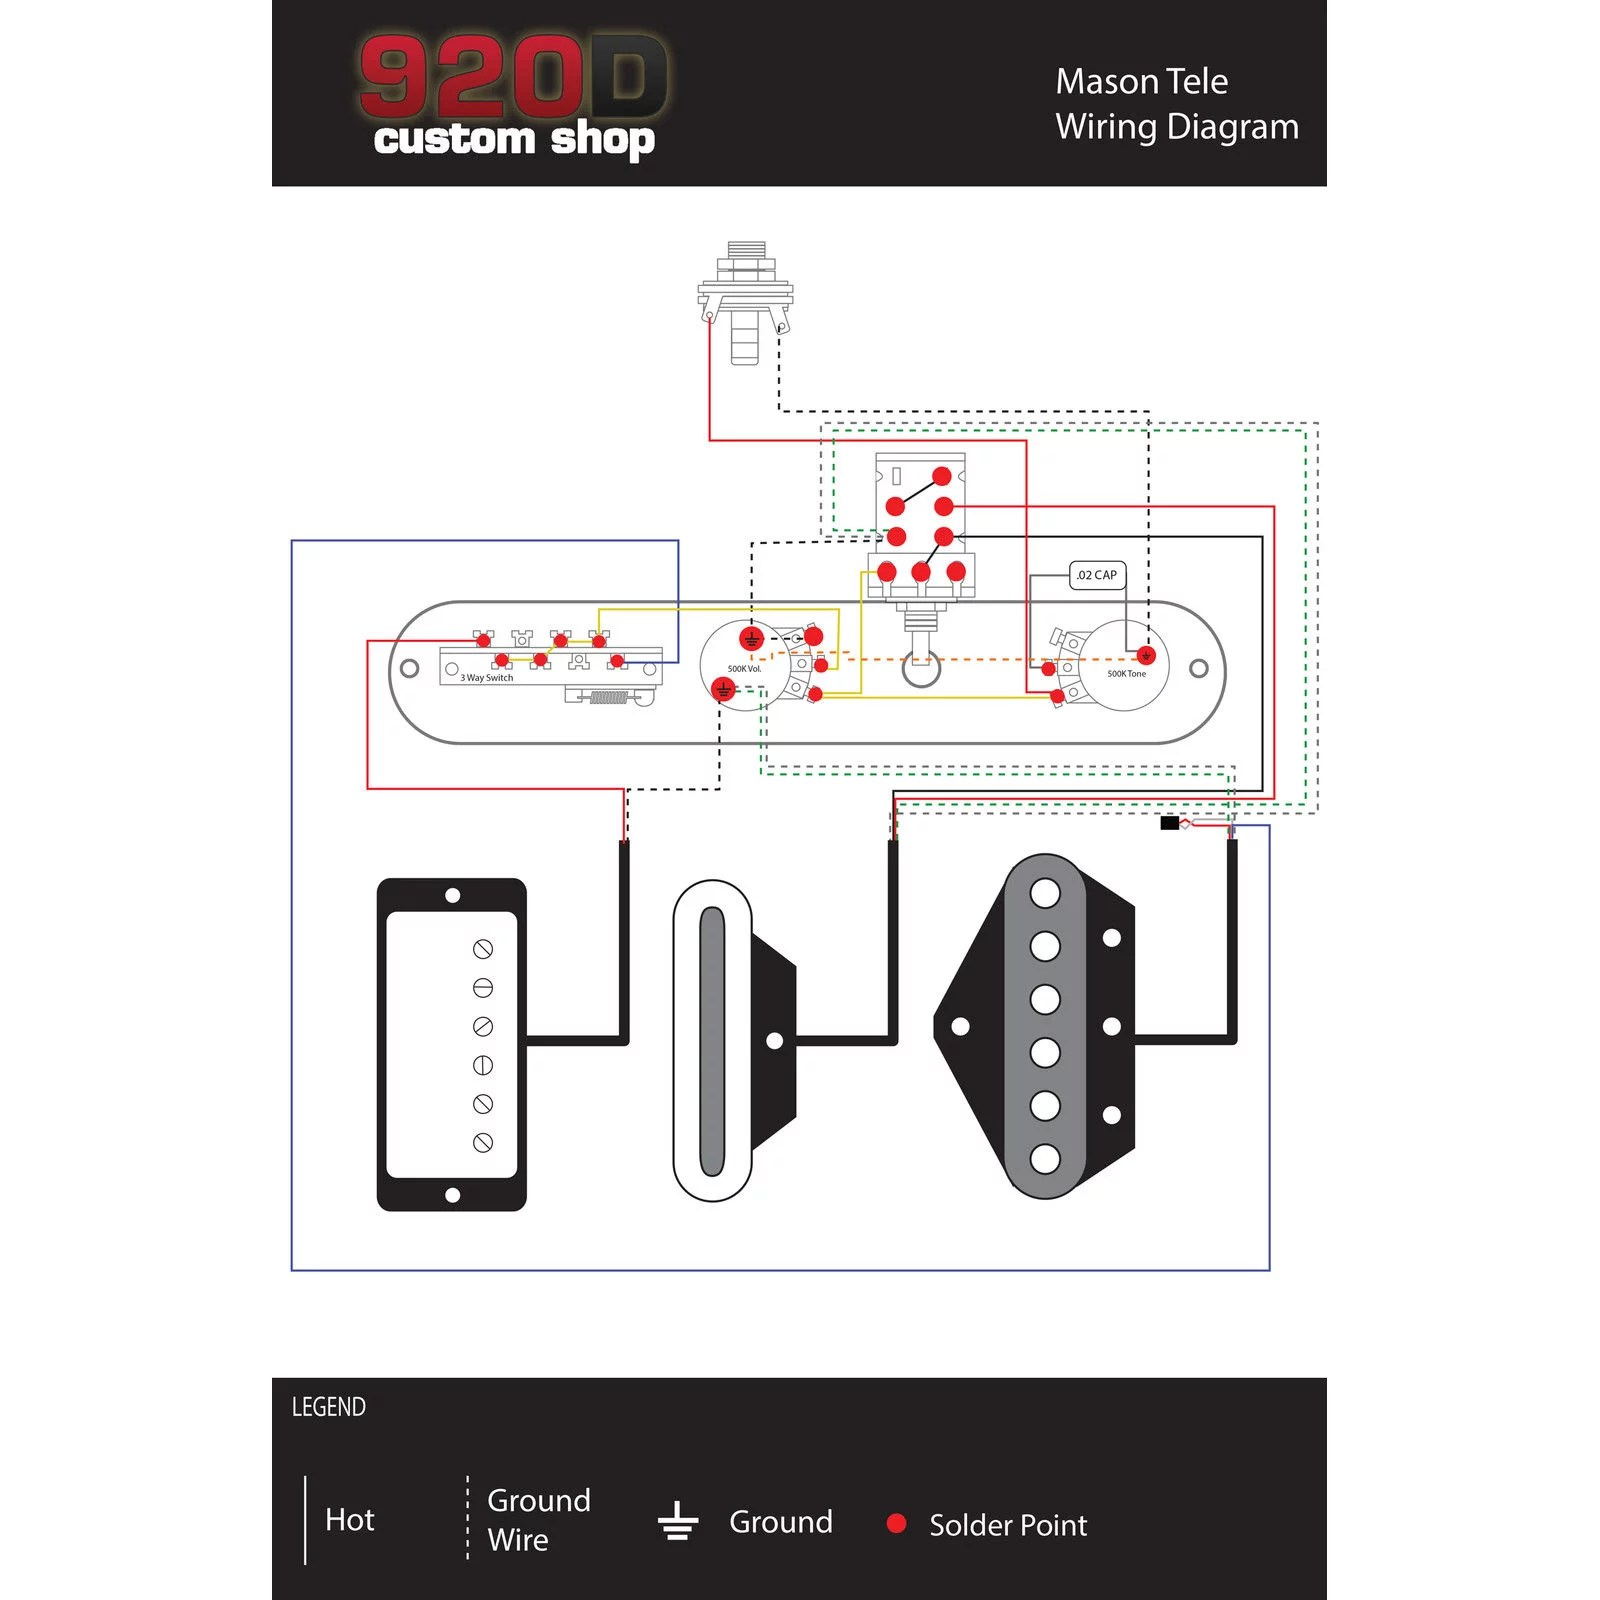 small resolution of 920d fender telecaster tele brent mason style 3 w control plate fender wiring diagrams 920d fender